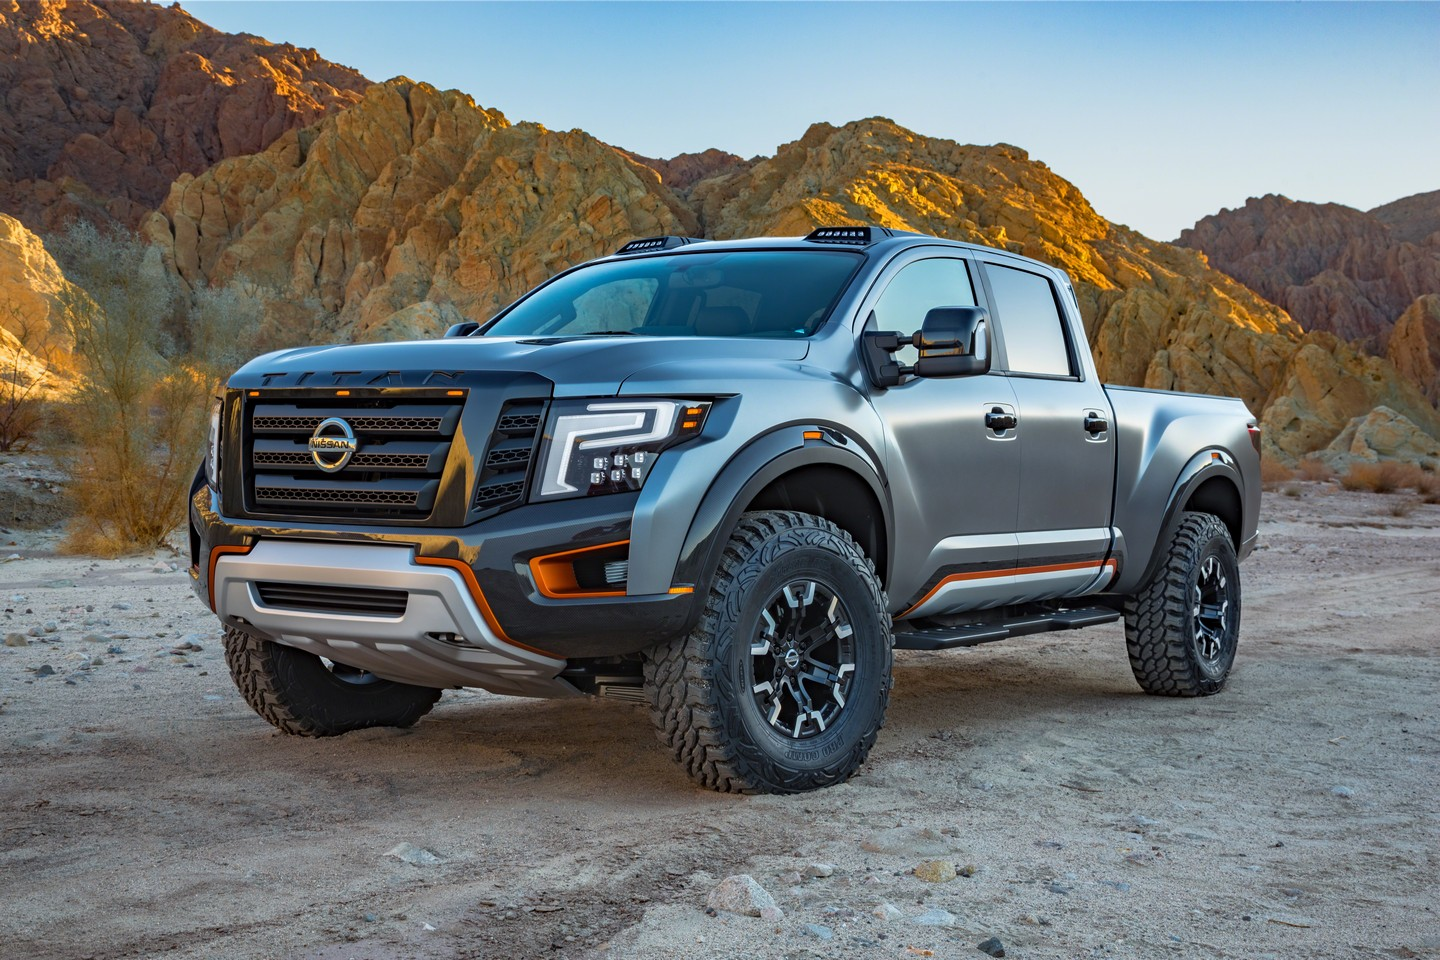 Nissan Titan photo 159681